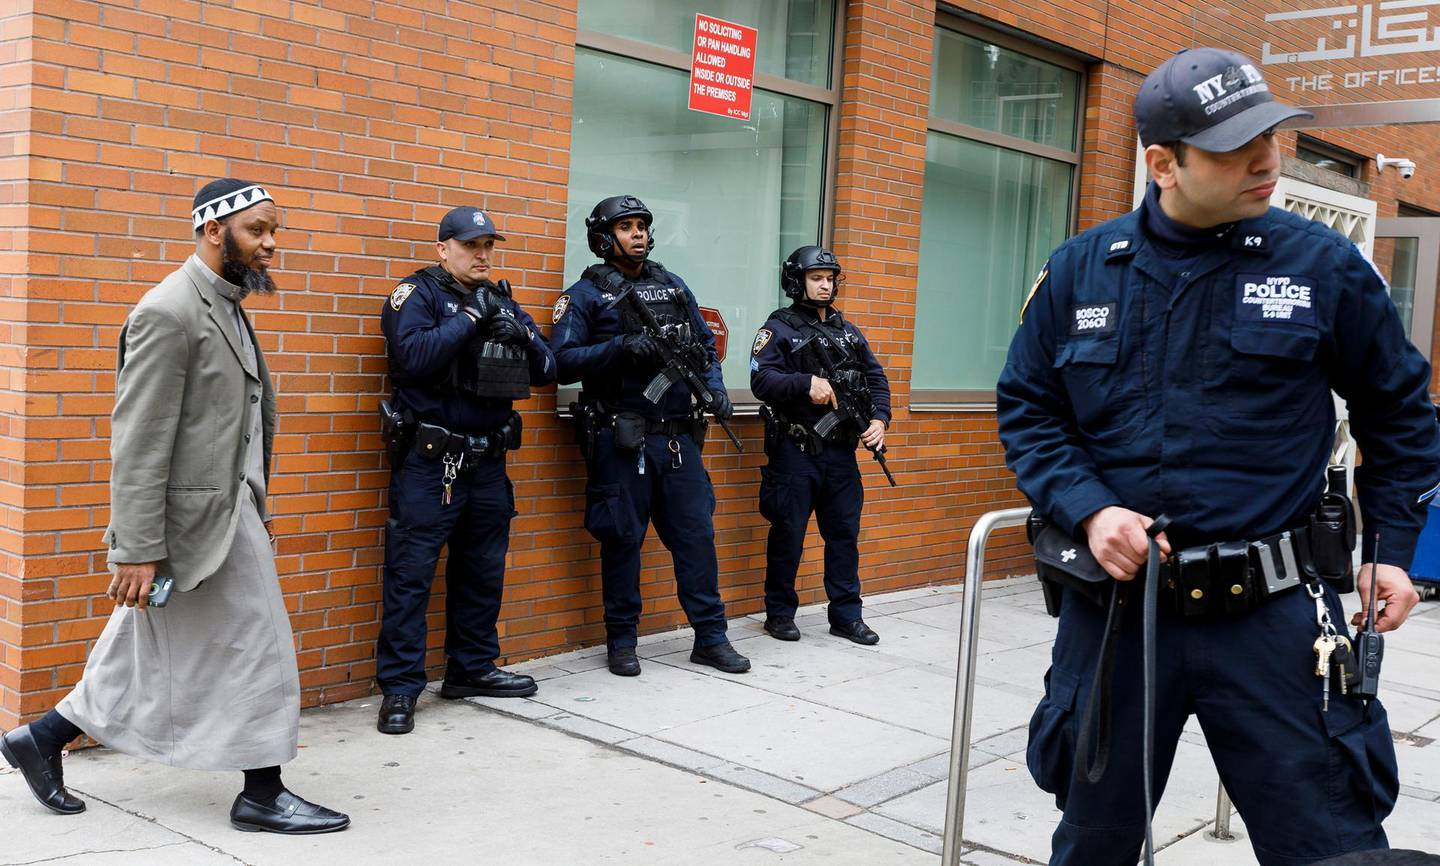 epa07440470 New York City police officers, including officers from the department's Counterterrorism Unit, provide security at the Islamic Cultural Center of New York as people arrive for Friday prayers in New York, New York, USA, 15 March 2019. Security in New York, and at sites around the world, was heightened following what was described as terrorist attacks at two mosques in New Zealand where 49 people were killed by a gunman and 20 more injured and in critical conditions.  EPA/JUSTIN LANE